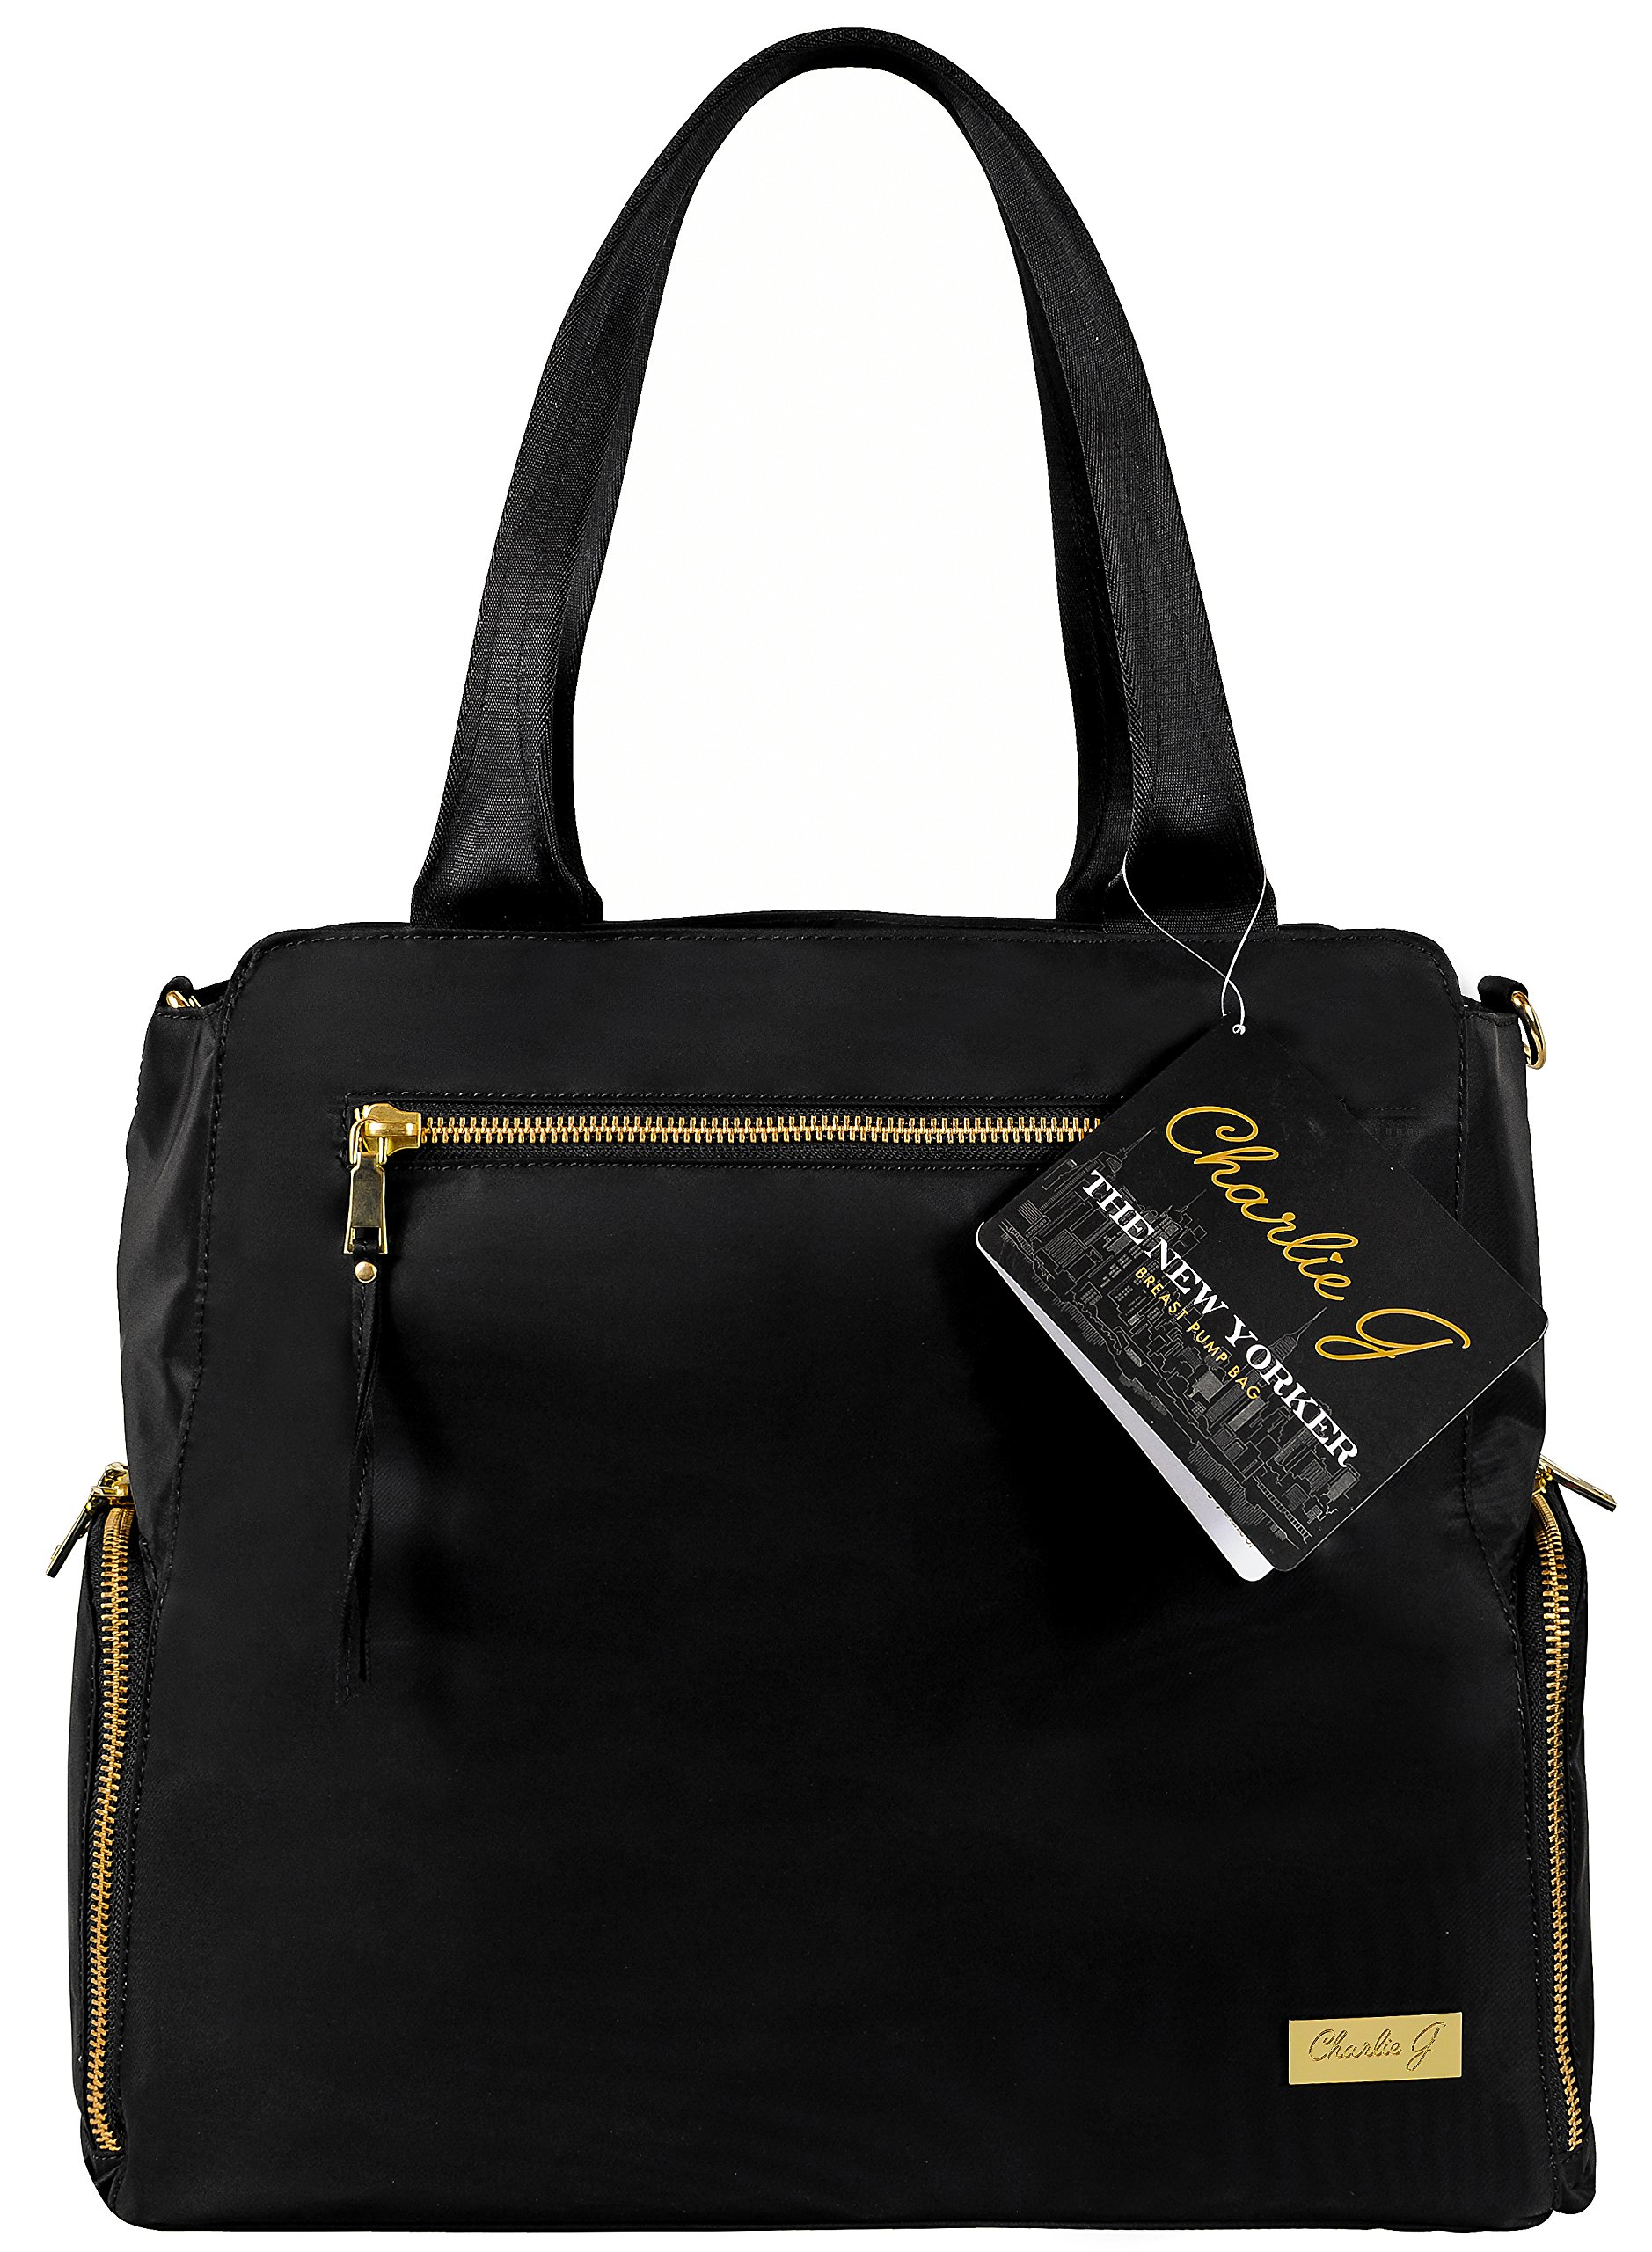 The New Yorker Breast Pump Bag by Charlie G, Black/Gold (Large) by Charlie G Bags